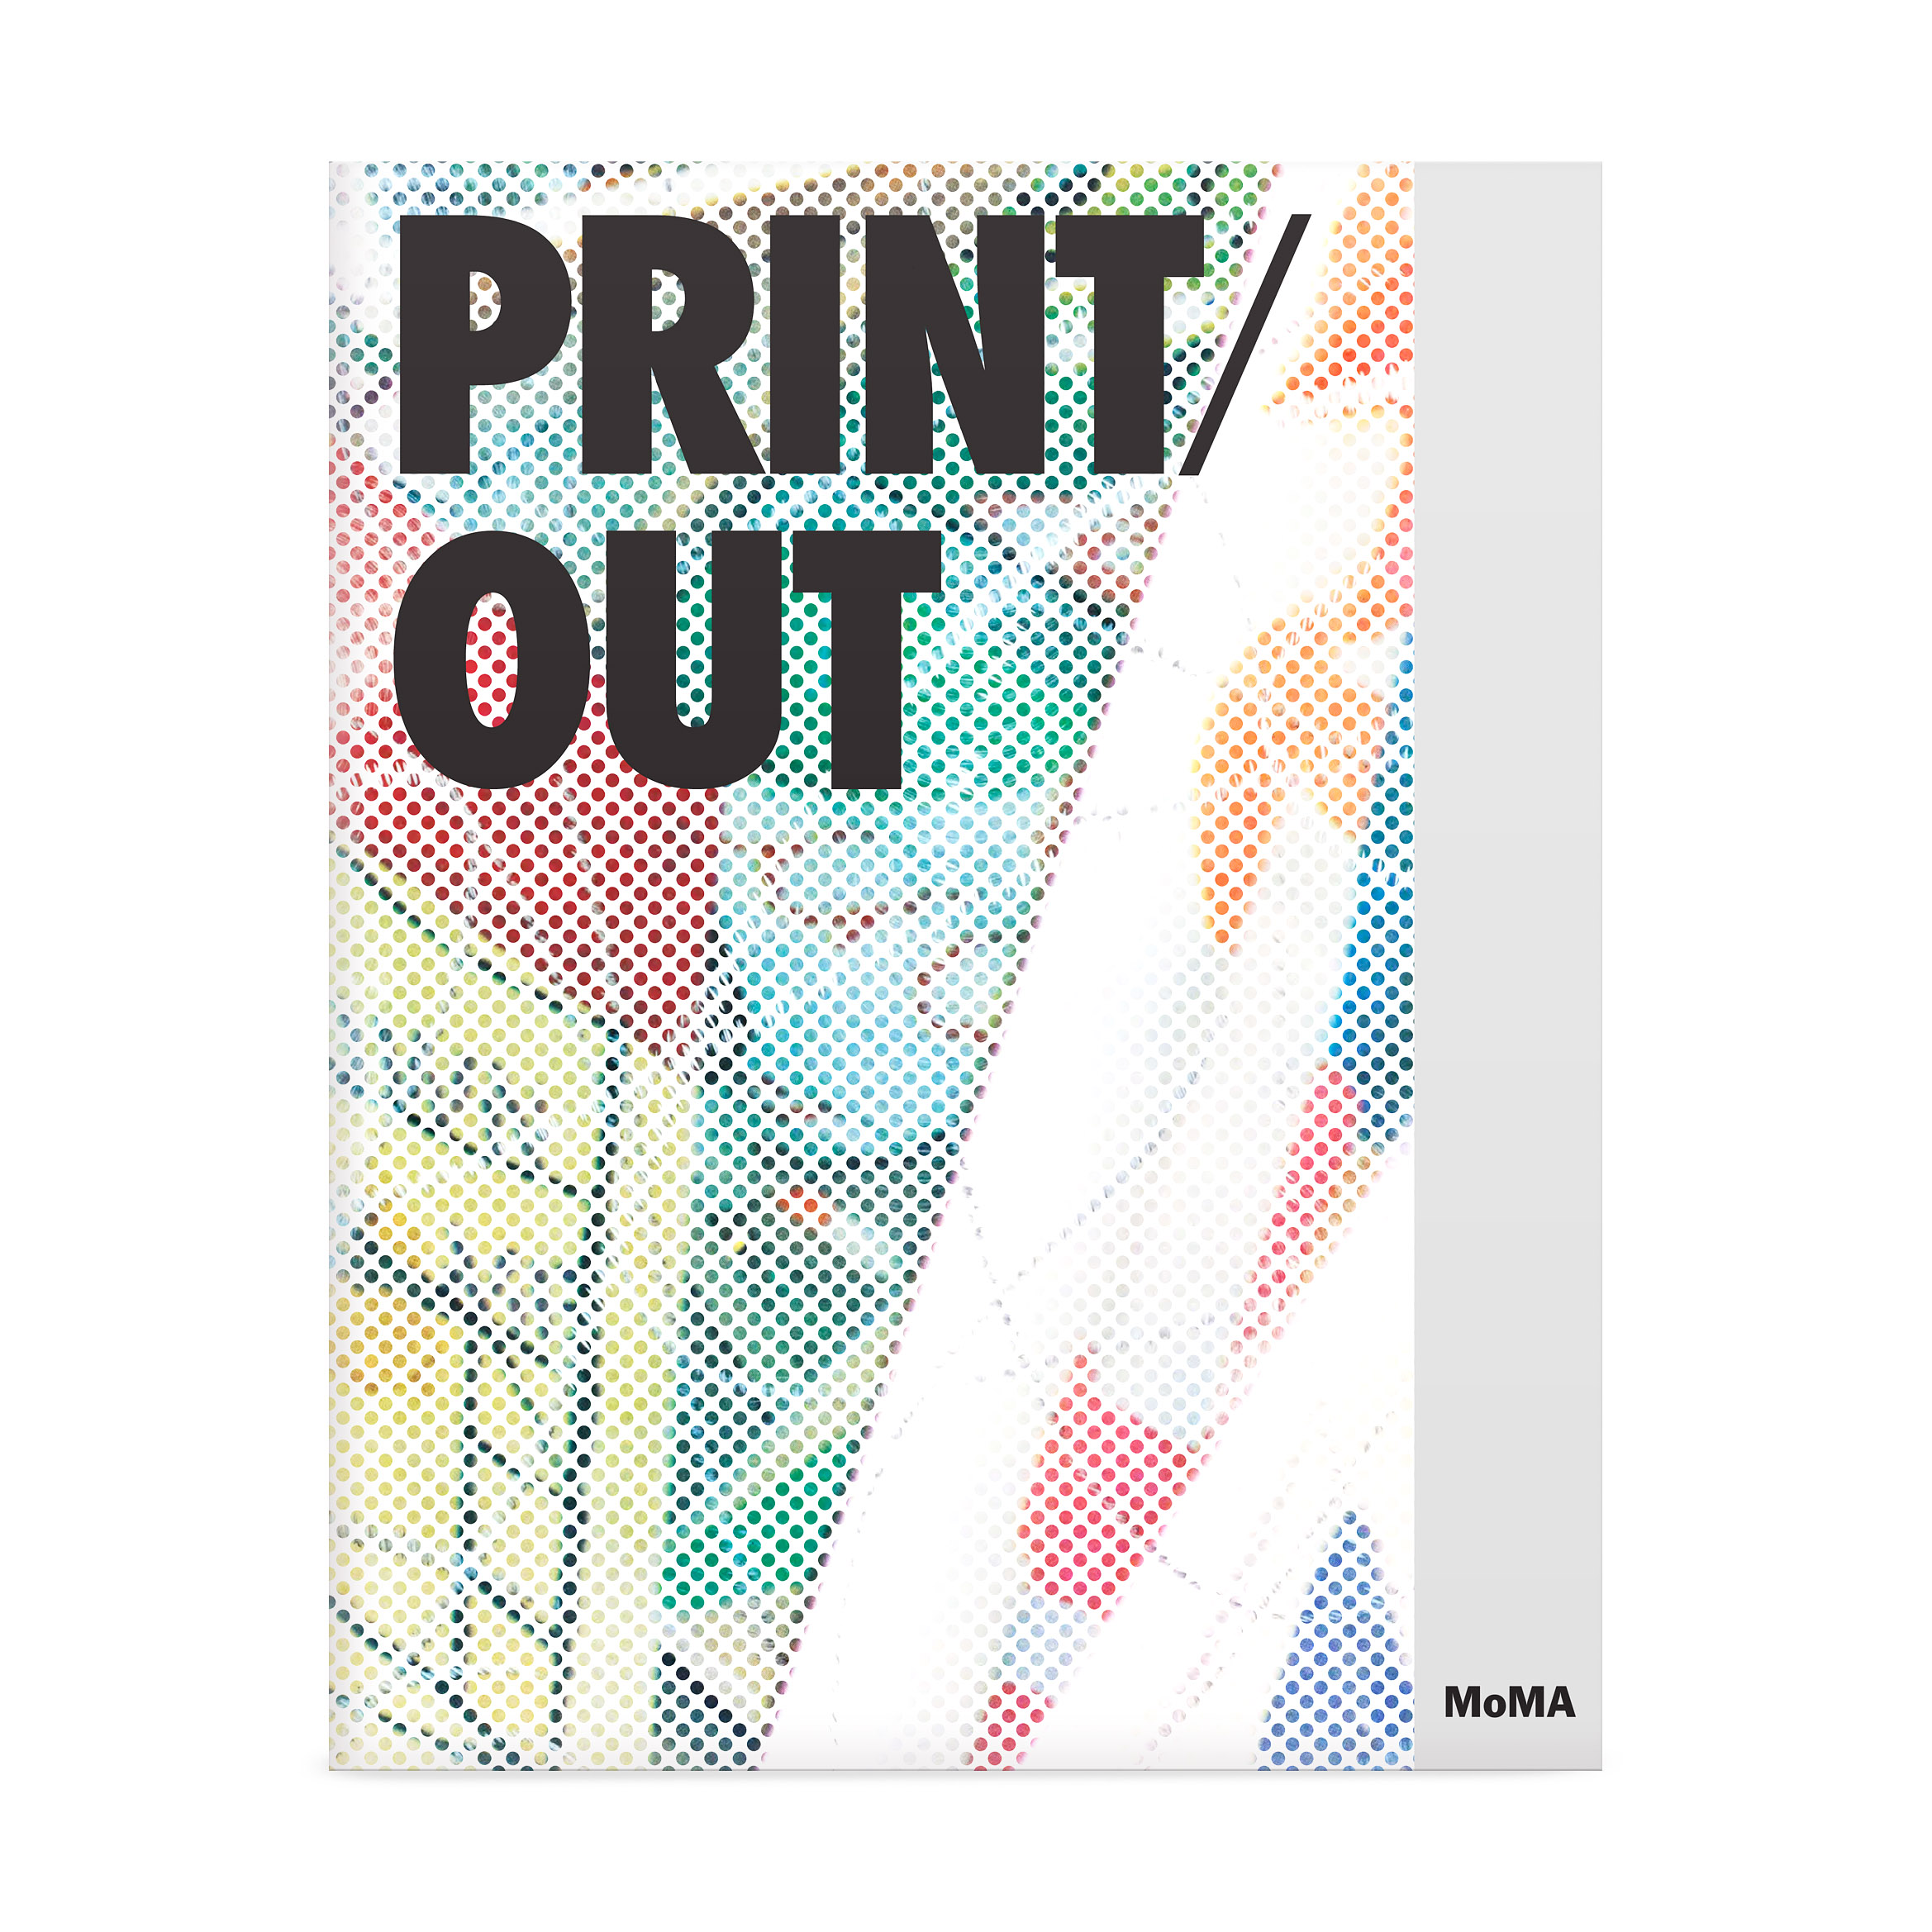 printout 20 years in print - Picture Print Out